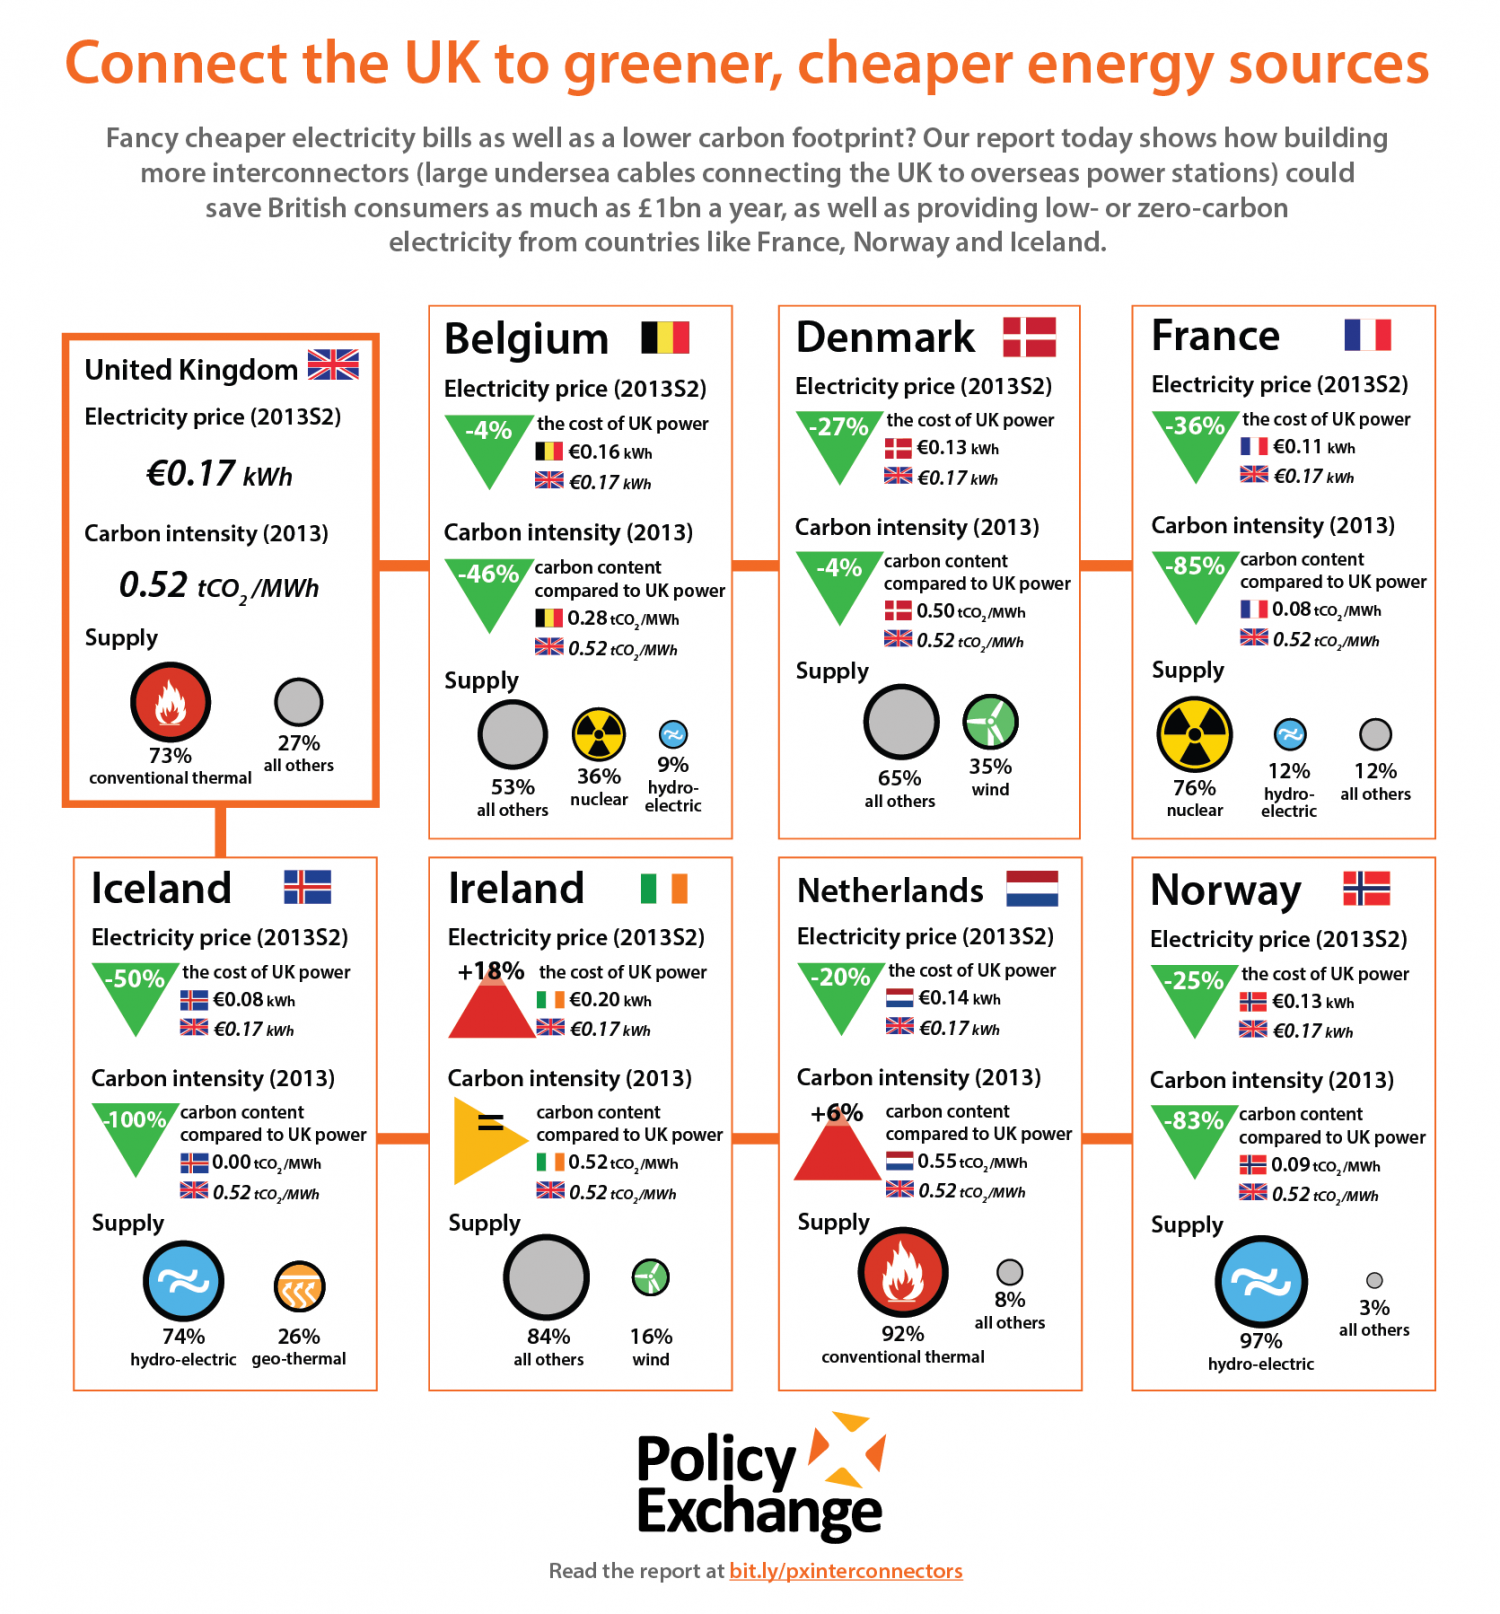 Connect the UK to greener, cheaper energy sources Infographic